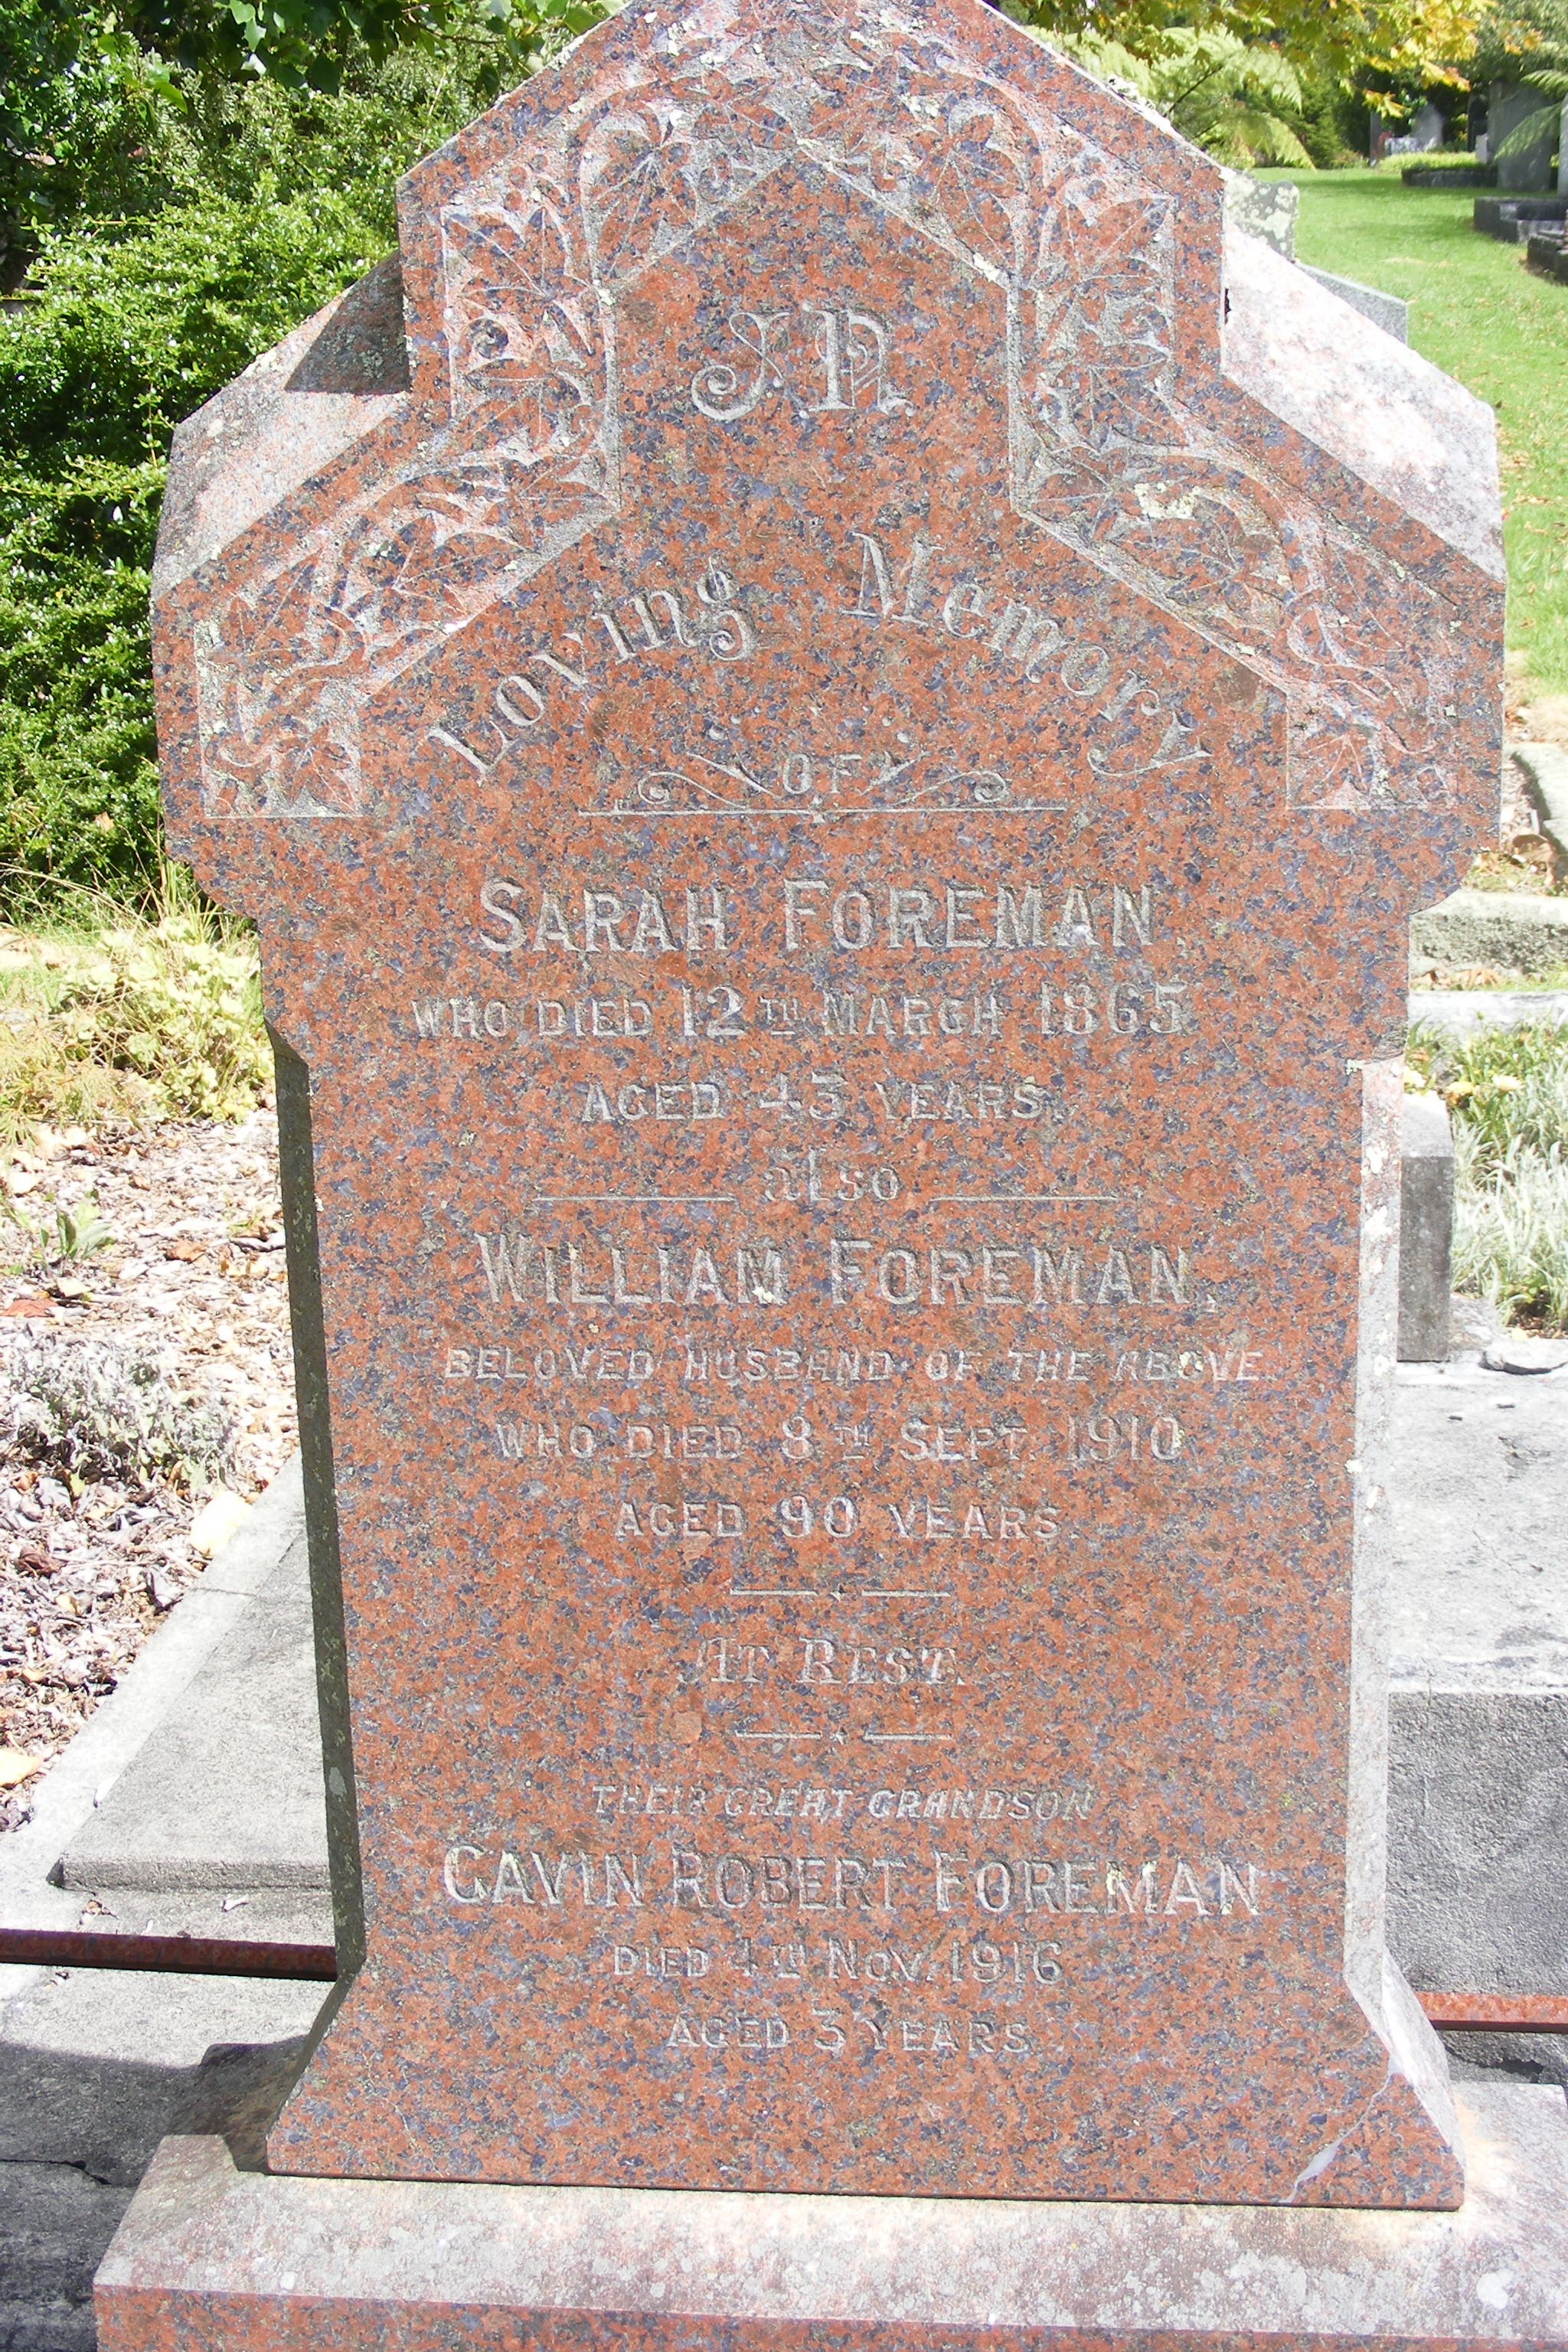 William Foreman - Sarah Spratt - gravestone